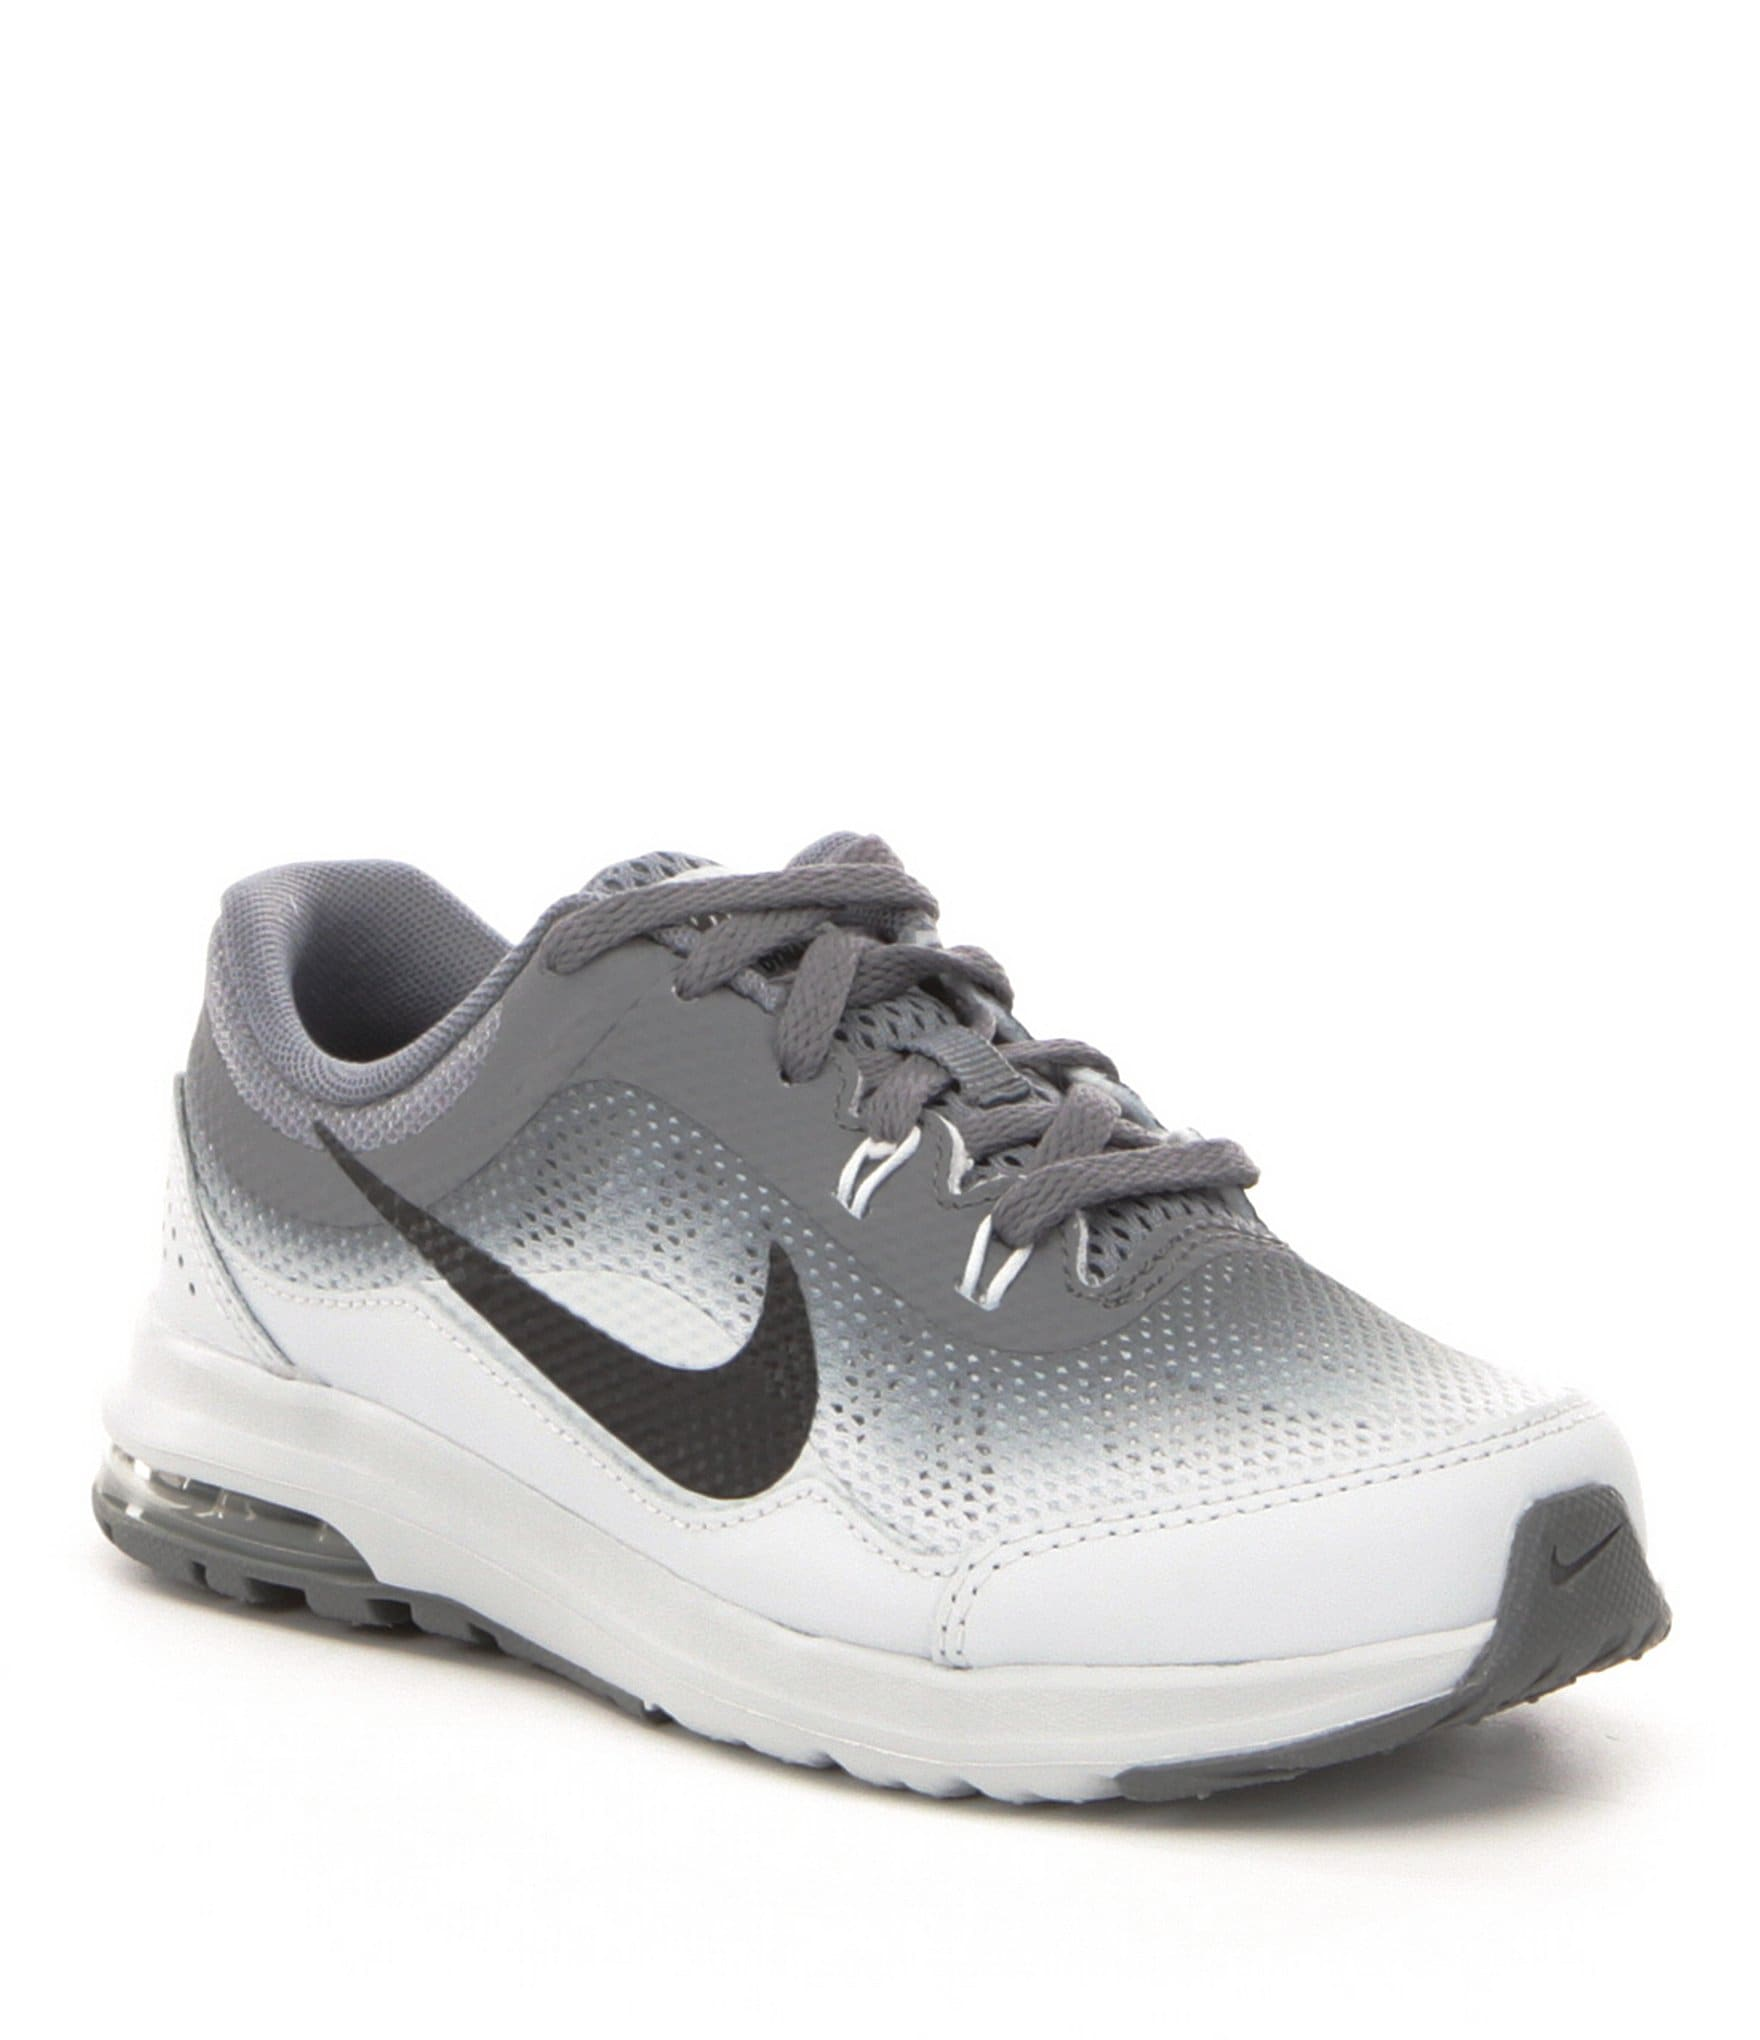 Nike Air Max Dynasty Running Shoes Review